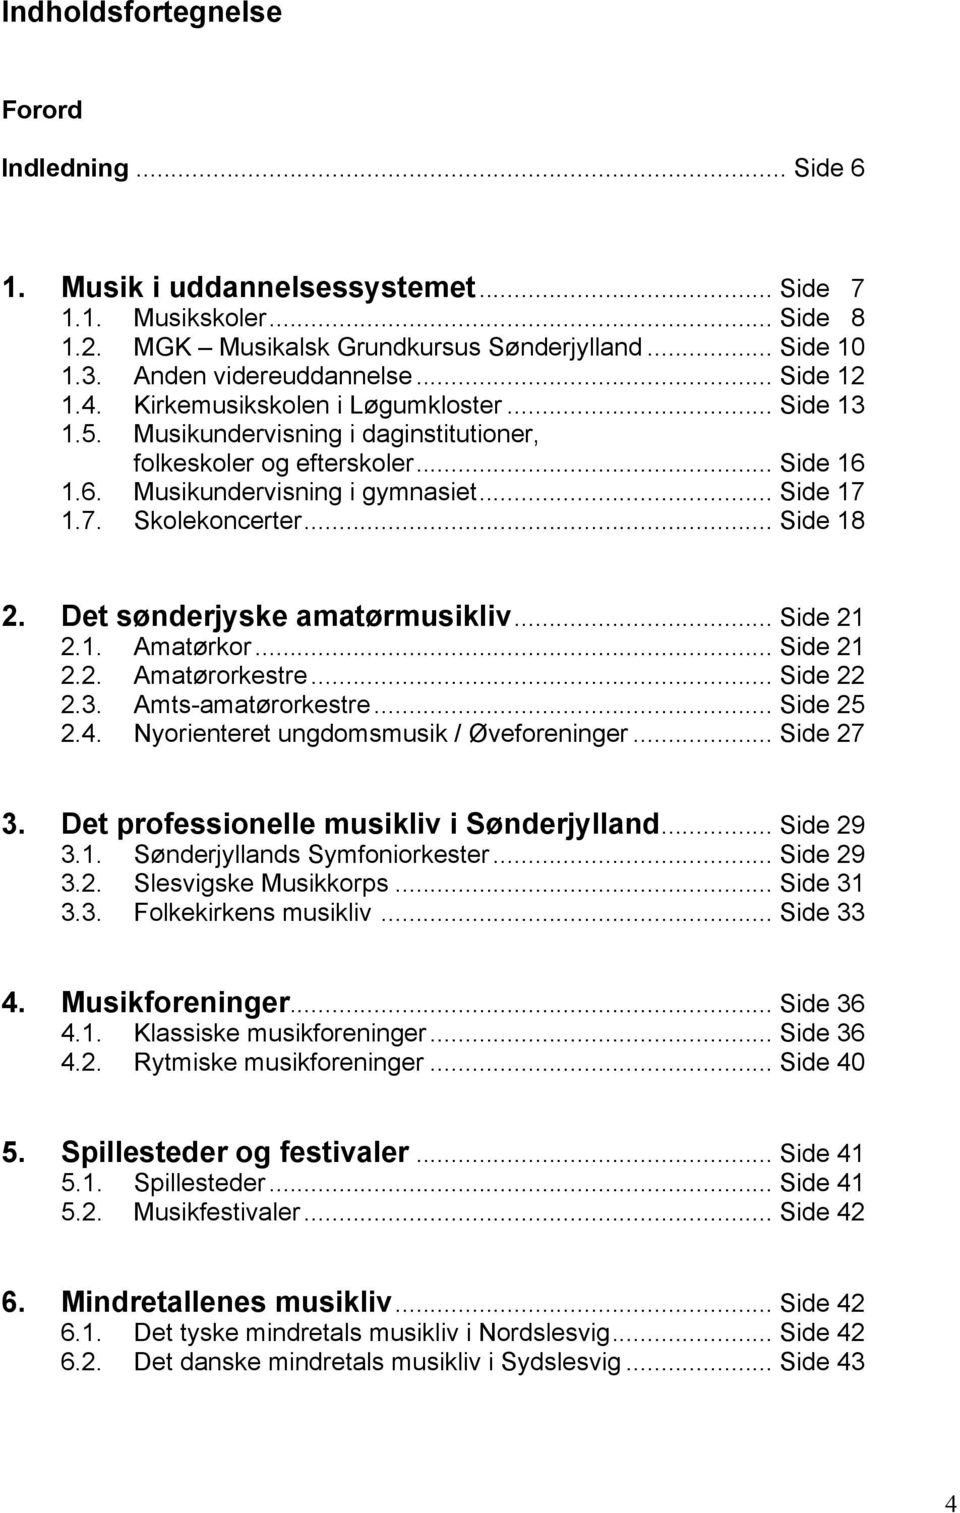 1.7. Skolekoncerter... Side 18 2. Det sønderjyske amatørmusikliv... Side 21 2.1. Amatørkor... Side 21 2.2. Amatørorkestre... Side 22 2.3. Amts-amatørorkestre... Side 25 2.4.